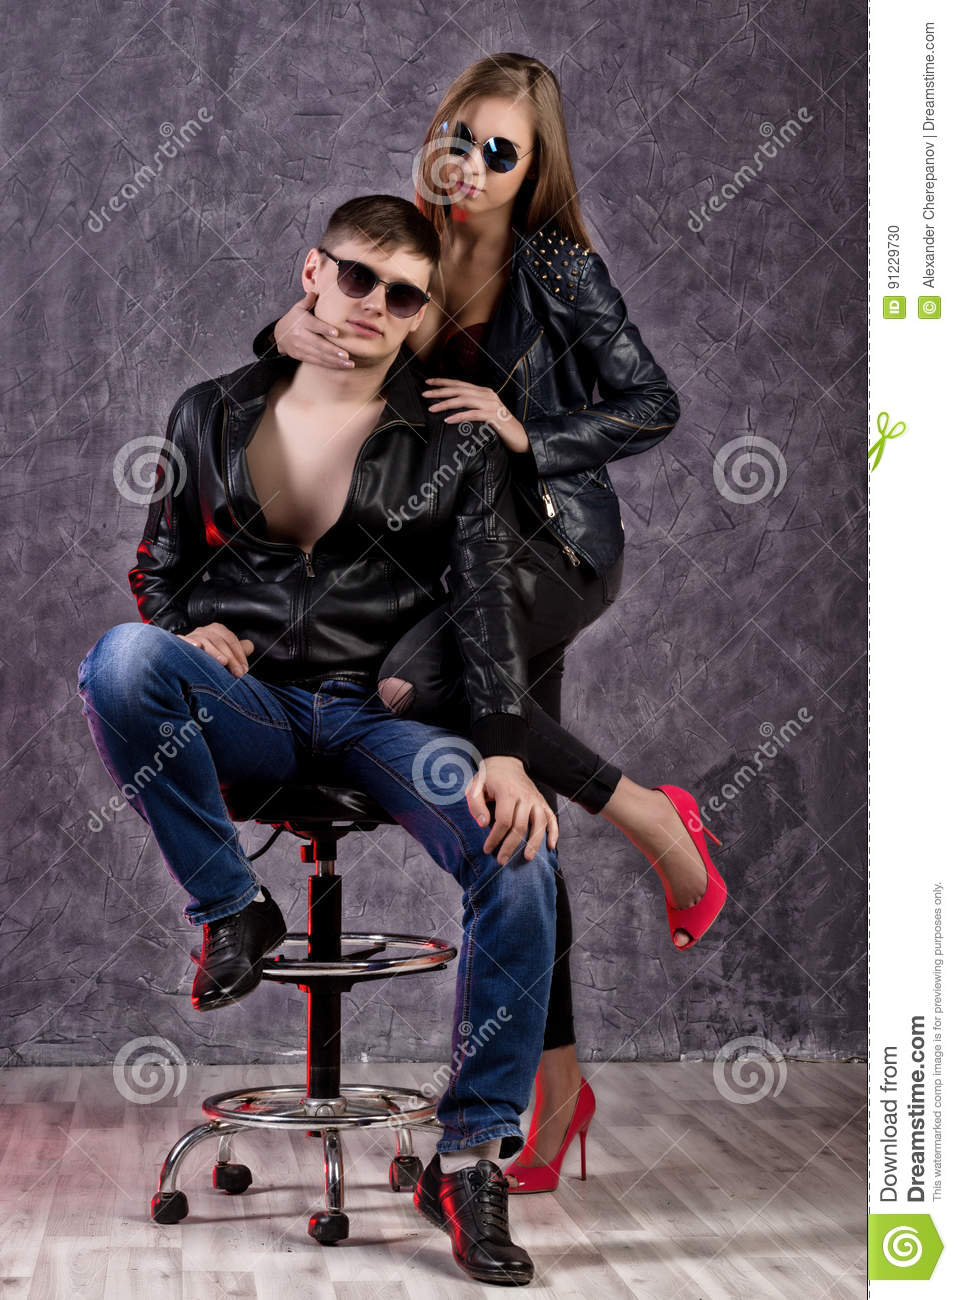 Leather girl dating